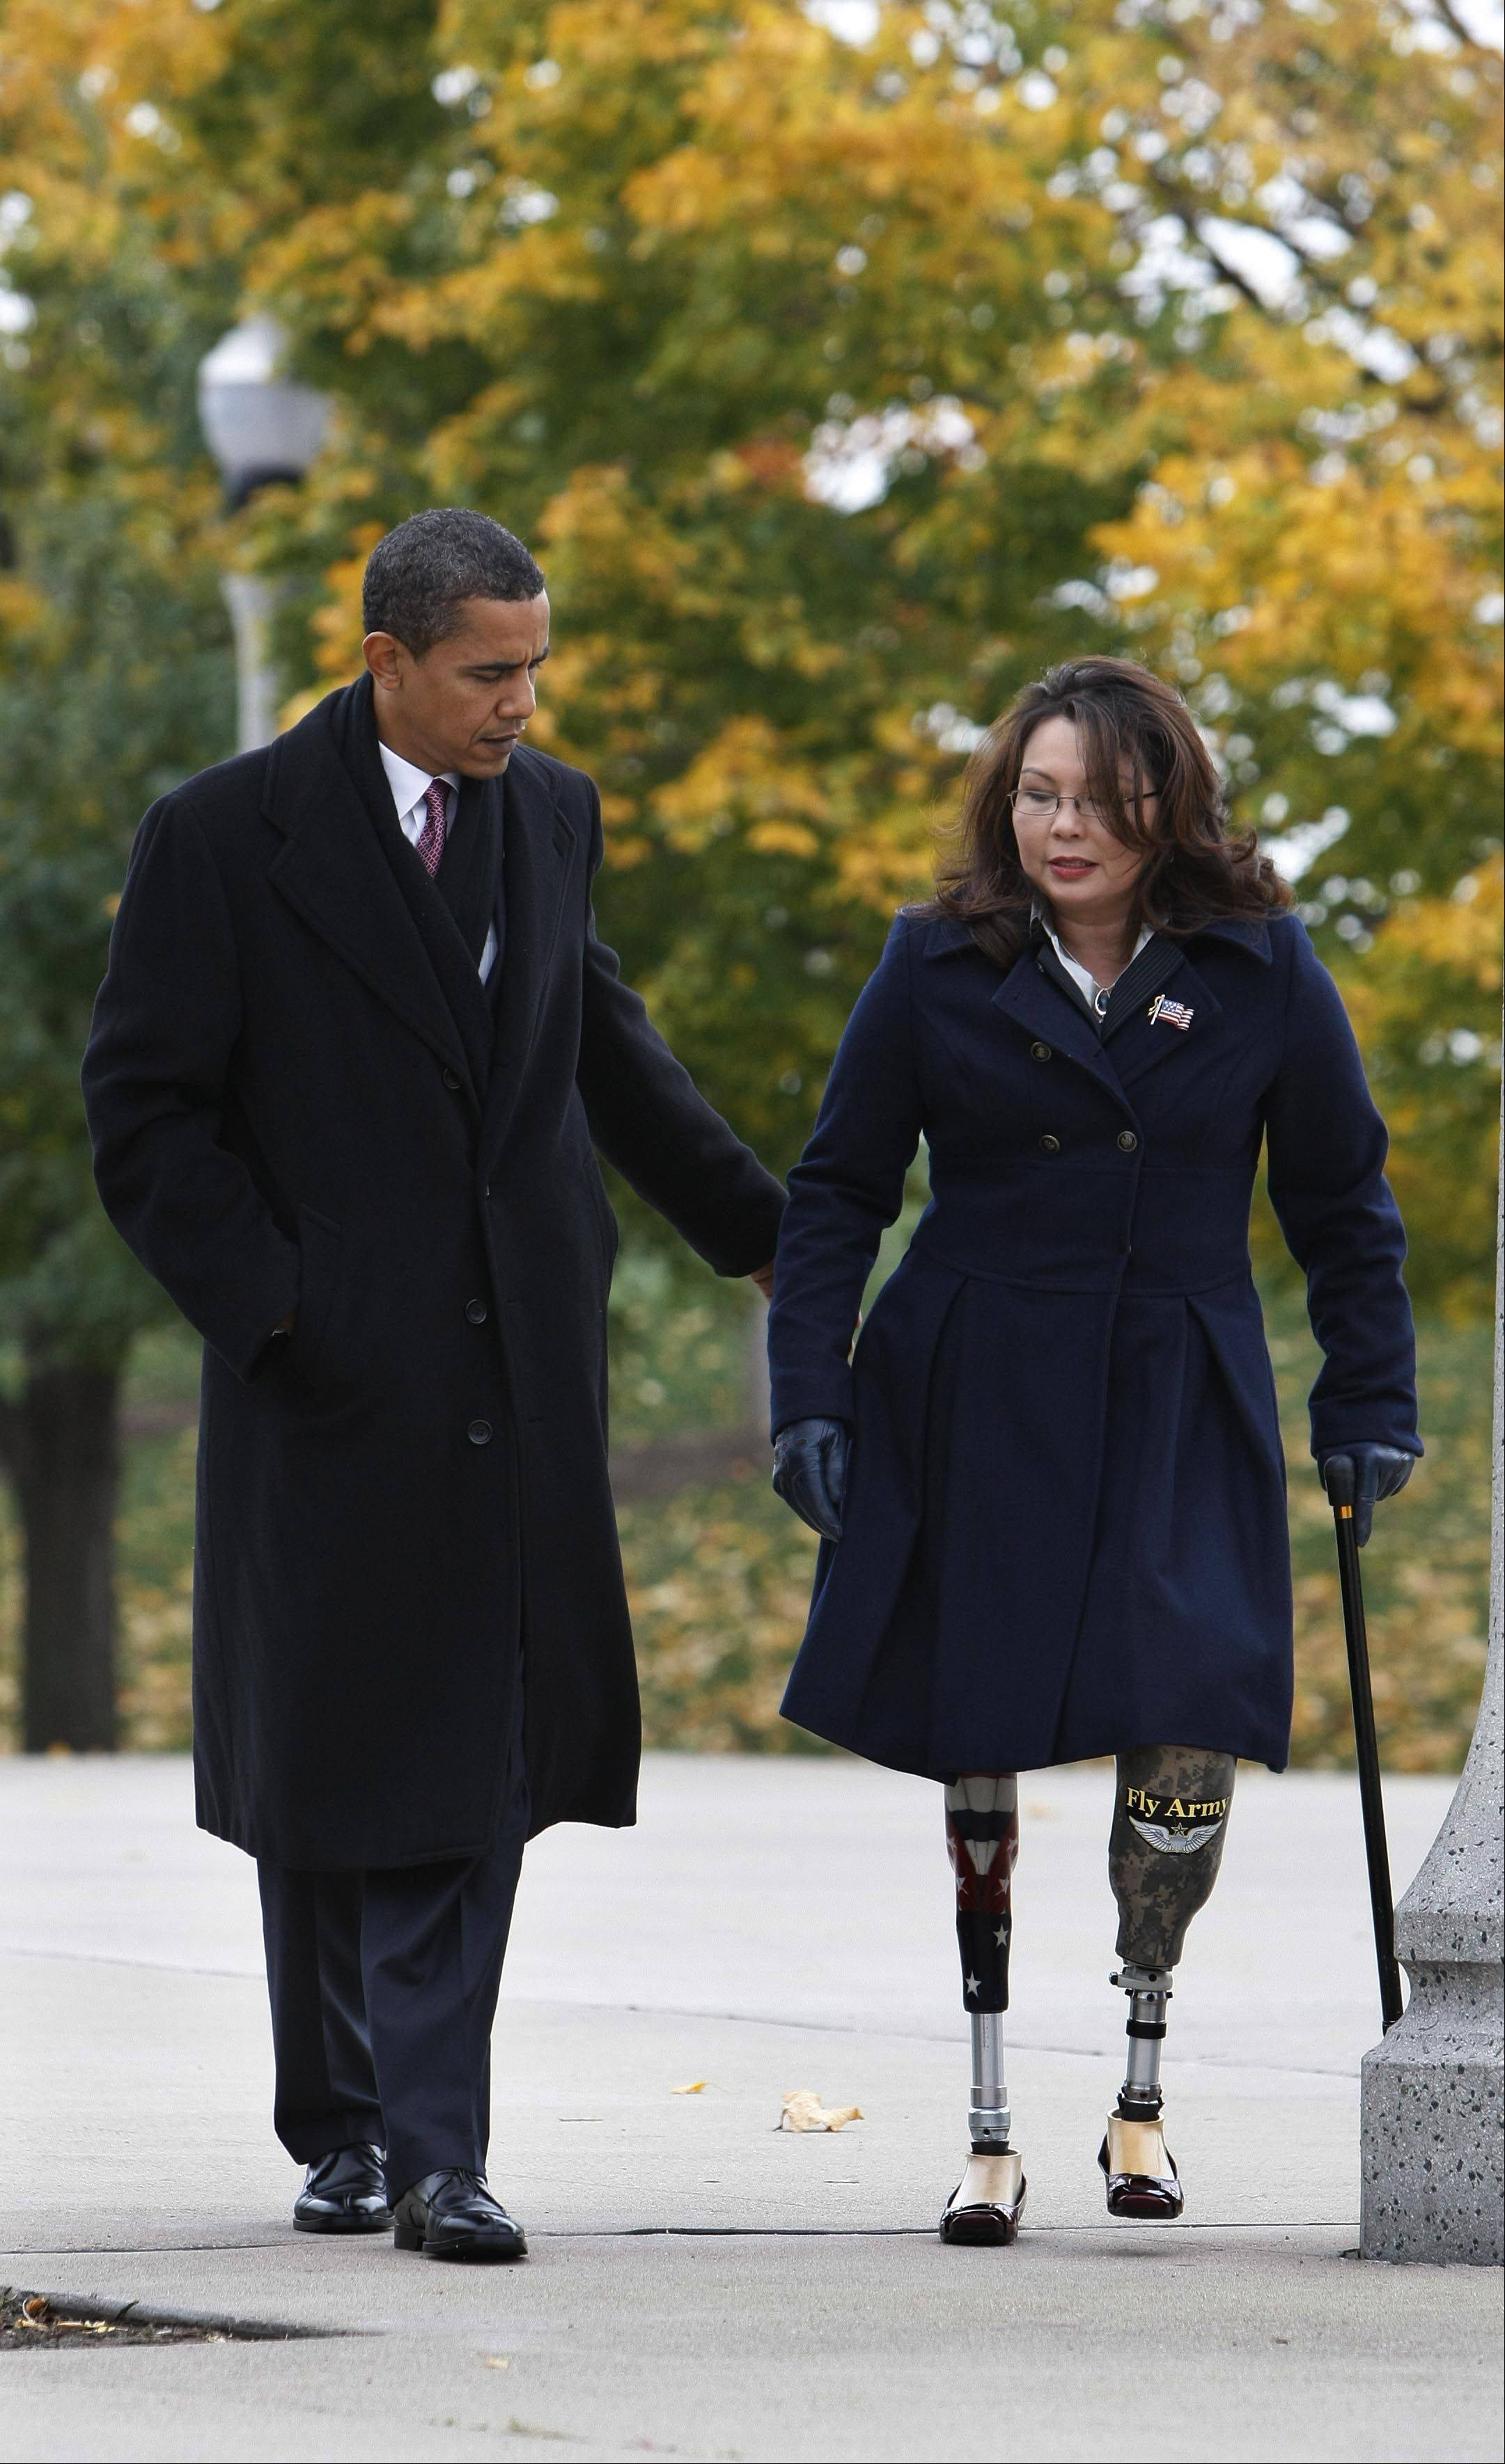 8th Congressional District candidate Tammy Duckworth of Hoffman Estates accompanies President Barack Obama as they arrive at a veterans memorial ceremony in Chicago in 2008.